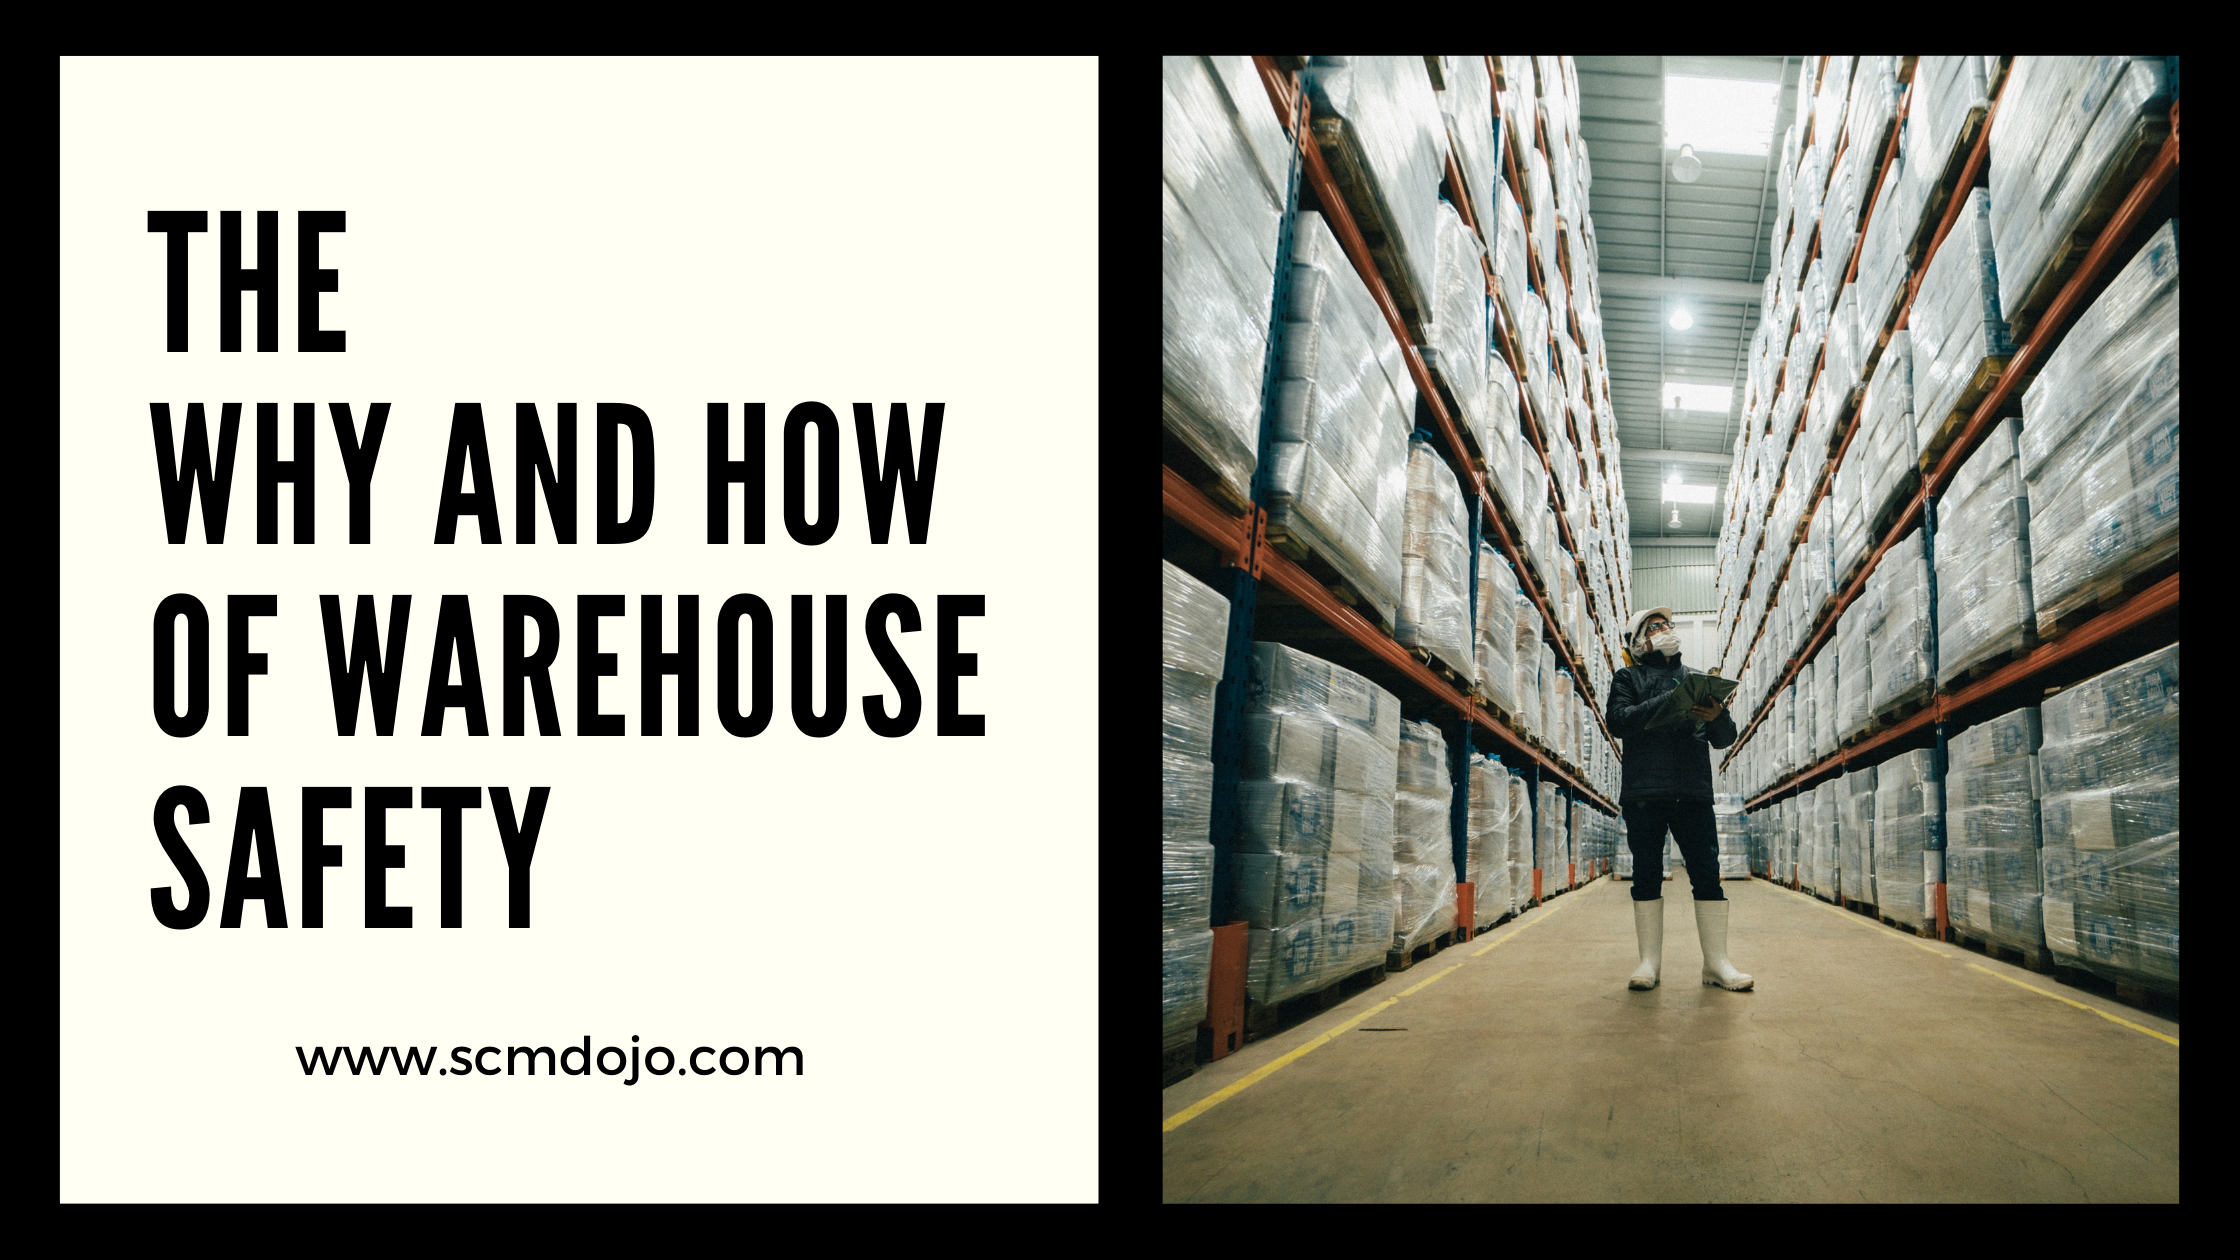 The Why and How of Warehouse Safety - 14 Categories to Consider